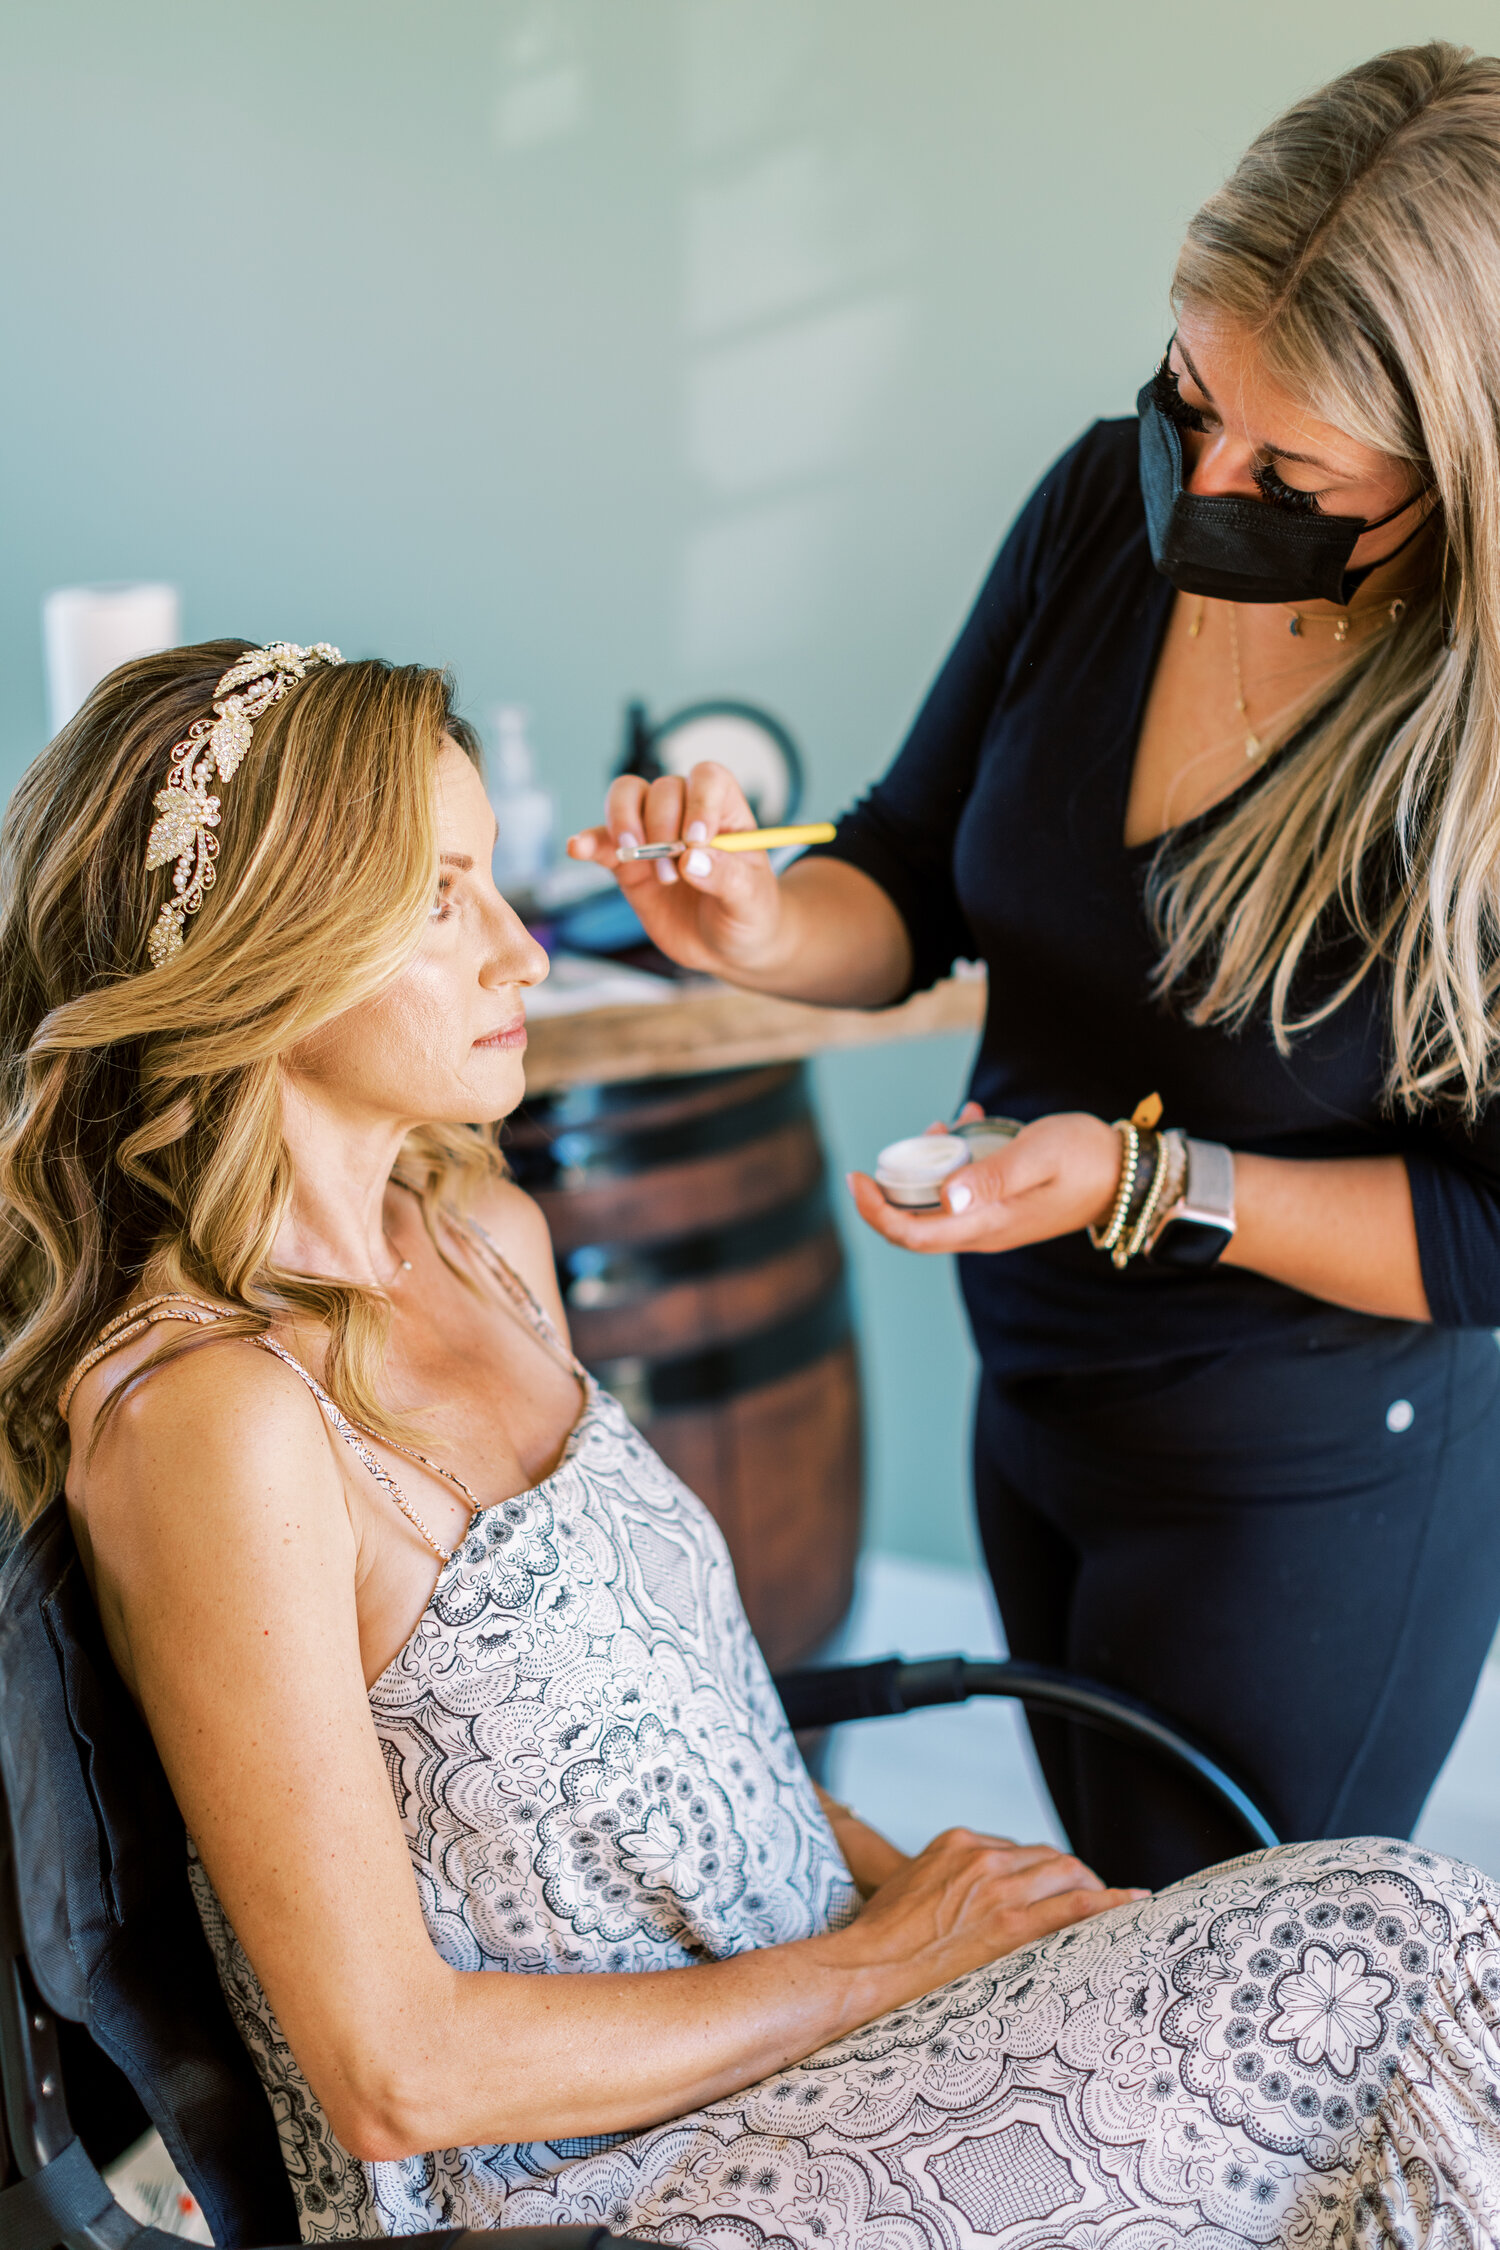 www.santabarbarawedding.com   Events by Fran   Ever After Petite Venue   Kendall Ann Photo   Tangled Lotus   Ever After Bridal   TOVAA   Hair by Pili   Jackie Romero   Bride Getting Ready